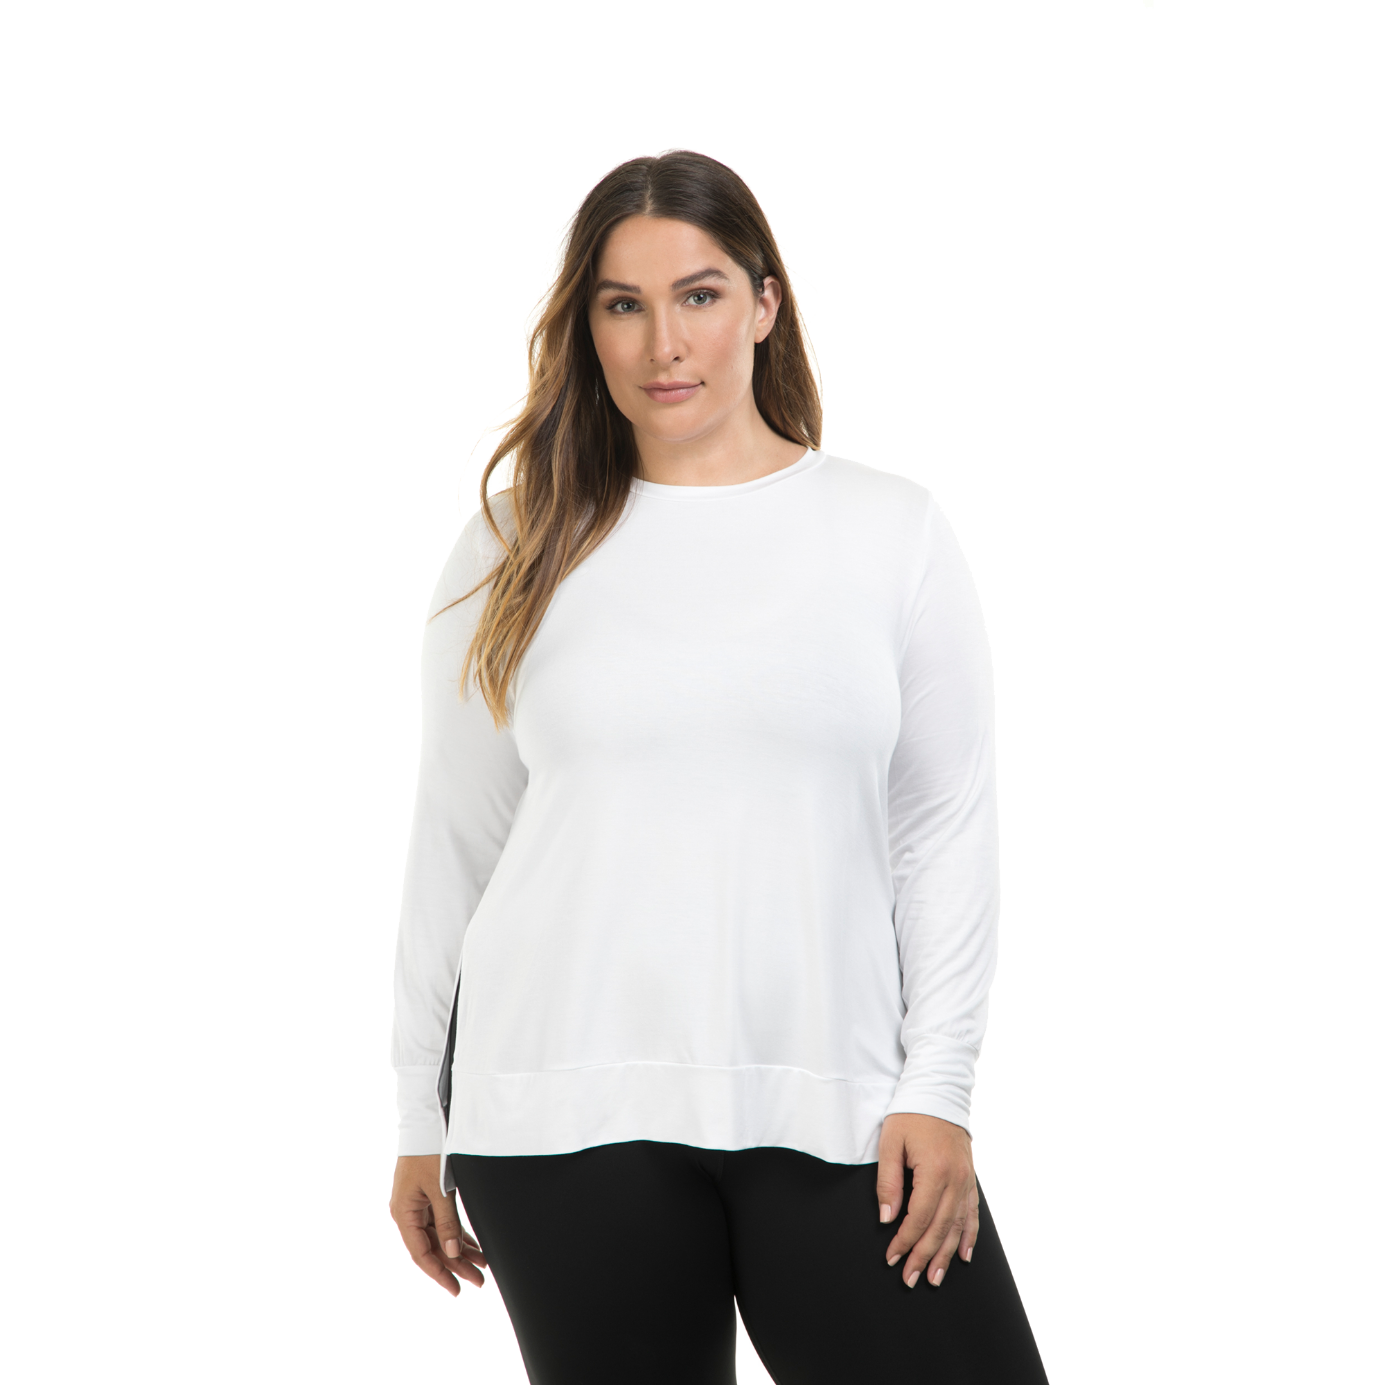 fbbe72f81 Lola Getts Active - ActiveWear for Plus Size Gals  Lola s got a ...